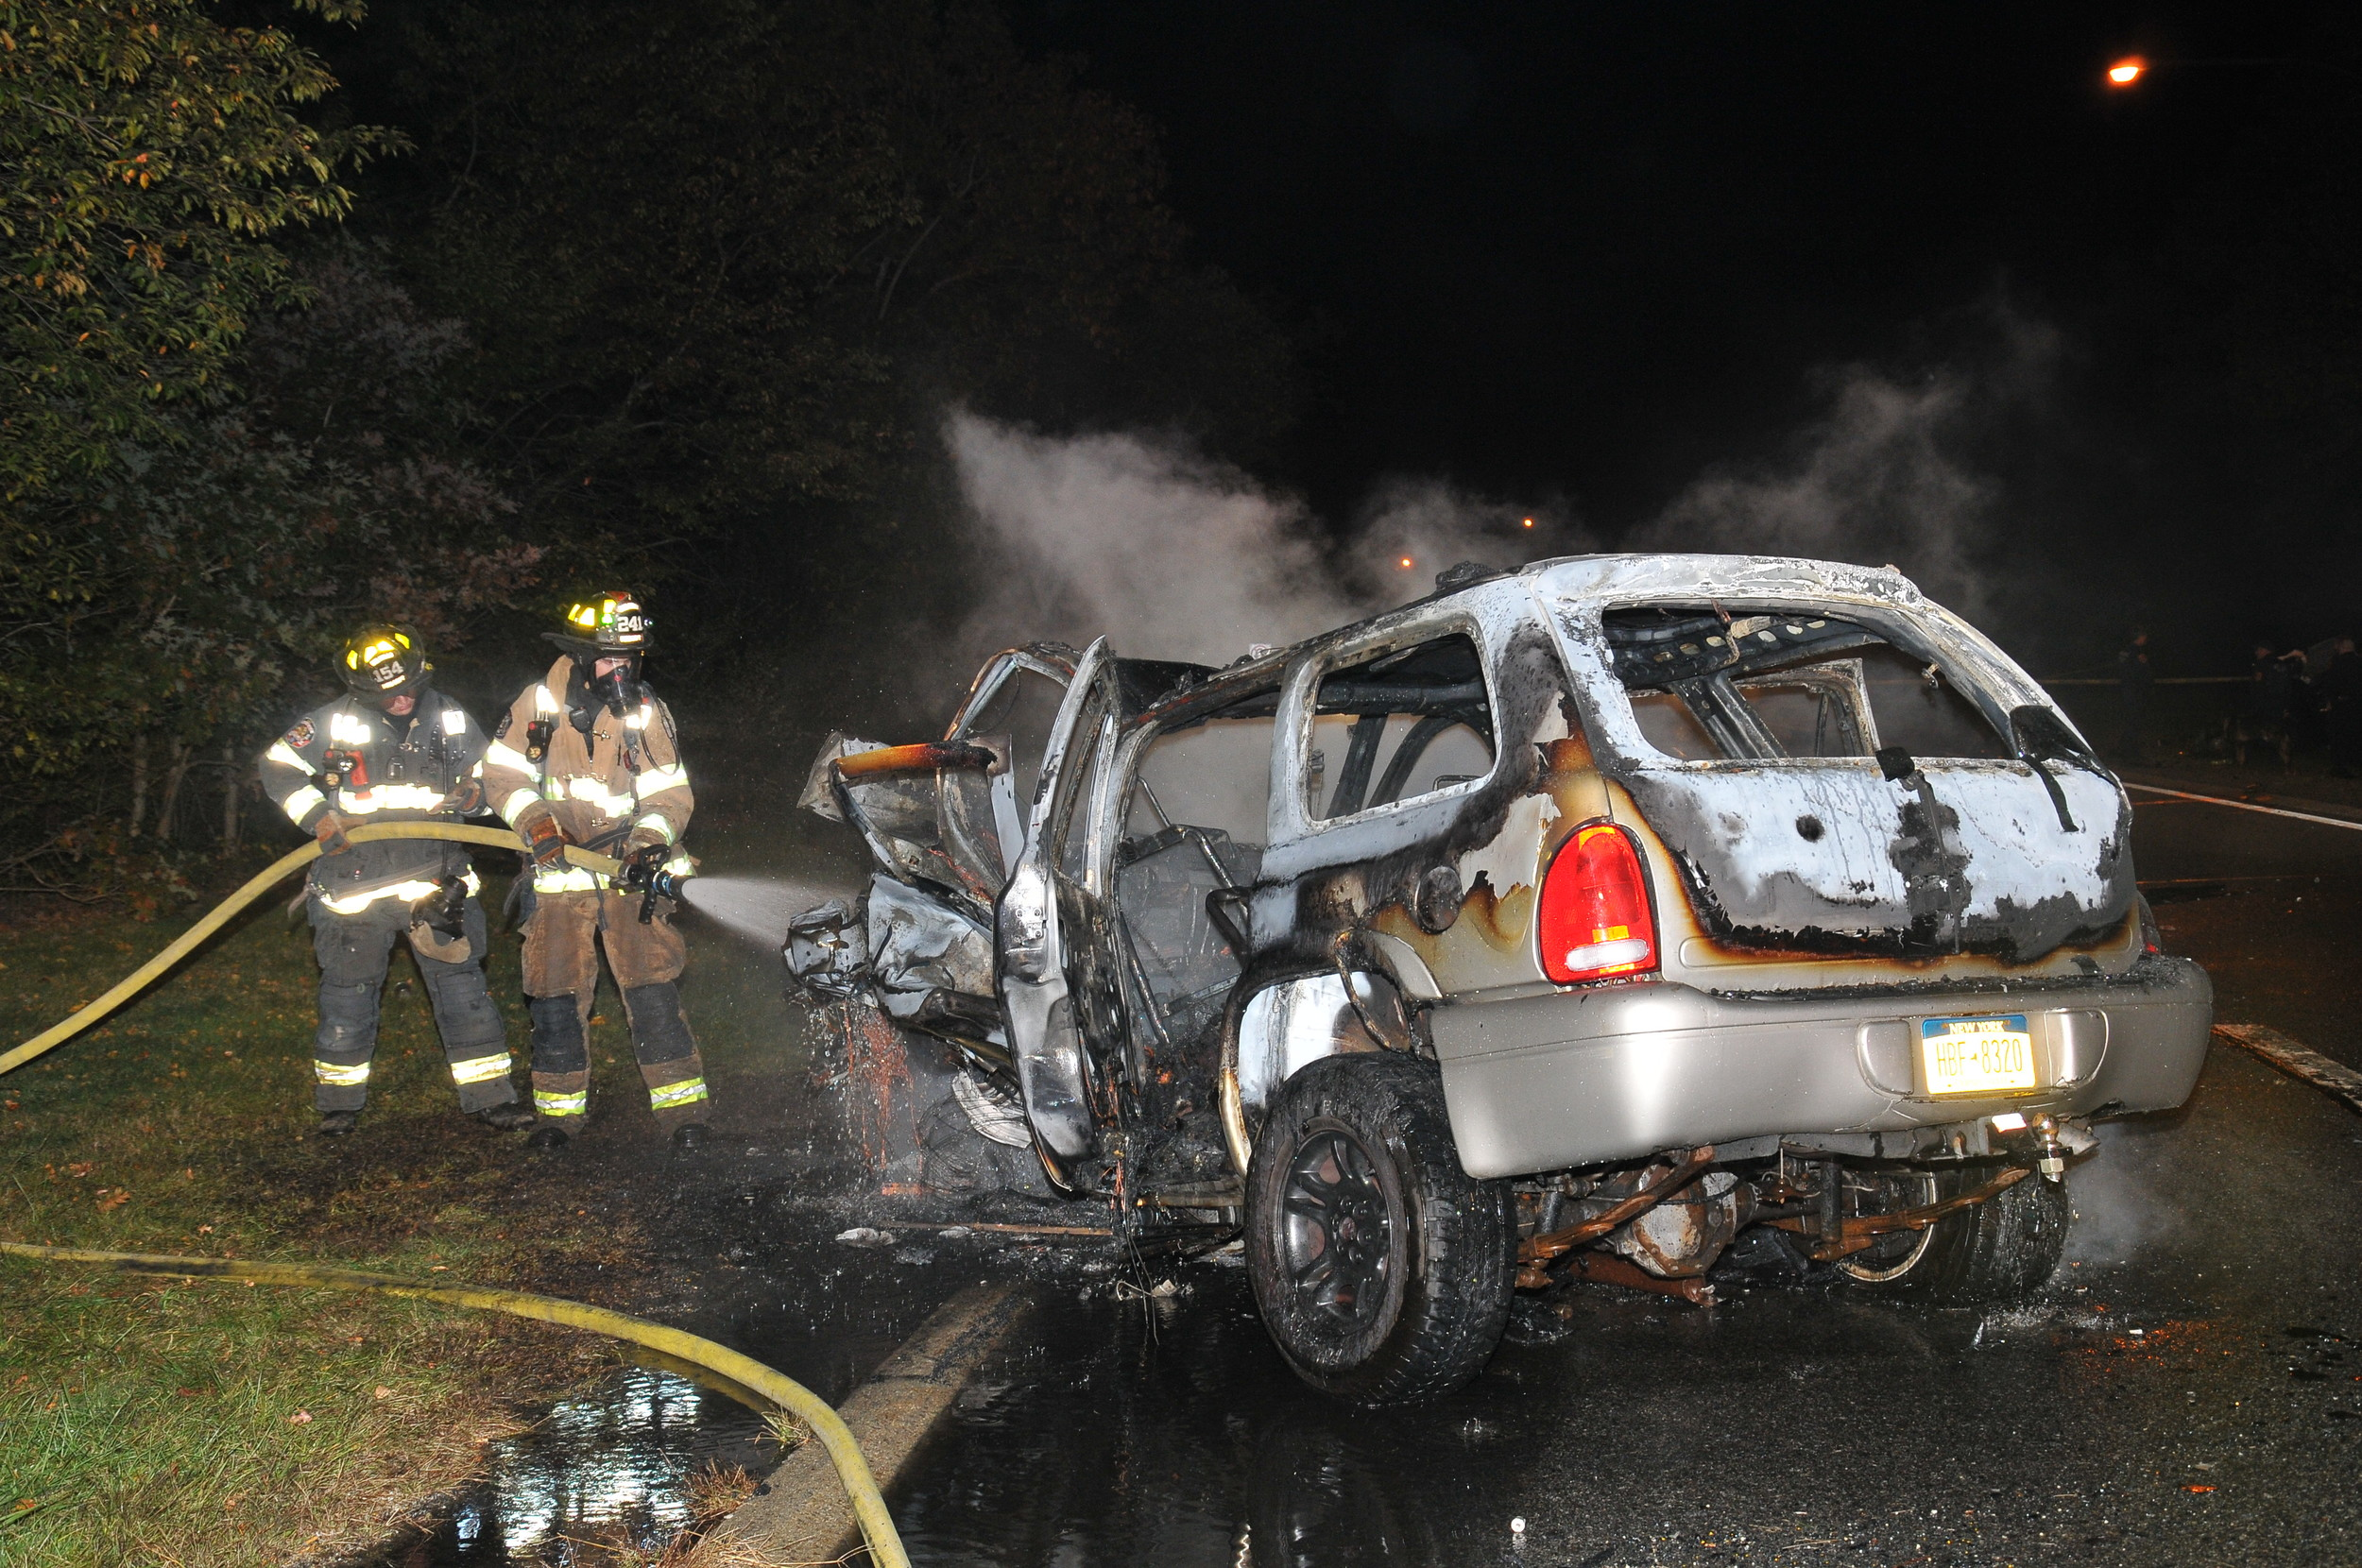 Dix Hills Firefighters extinguish a SUV that was involved in a wrong-way crash that killed two people on the Northern State Parkway in Dix Hills on Oct. 20. Photo credit: Steve Silverman.